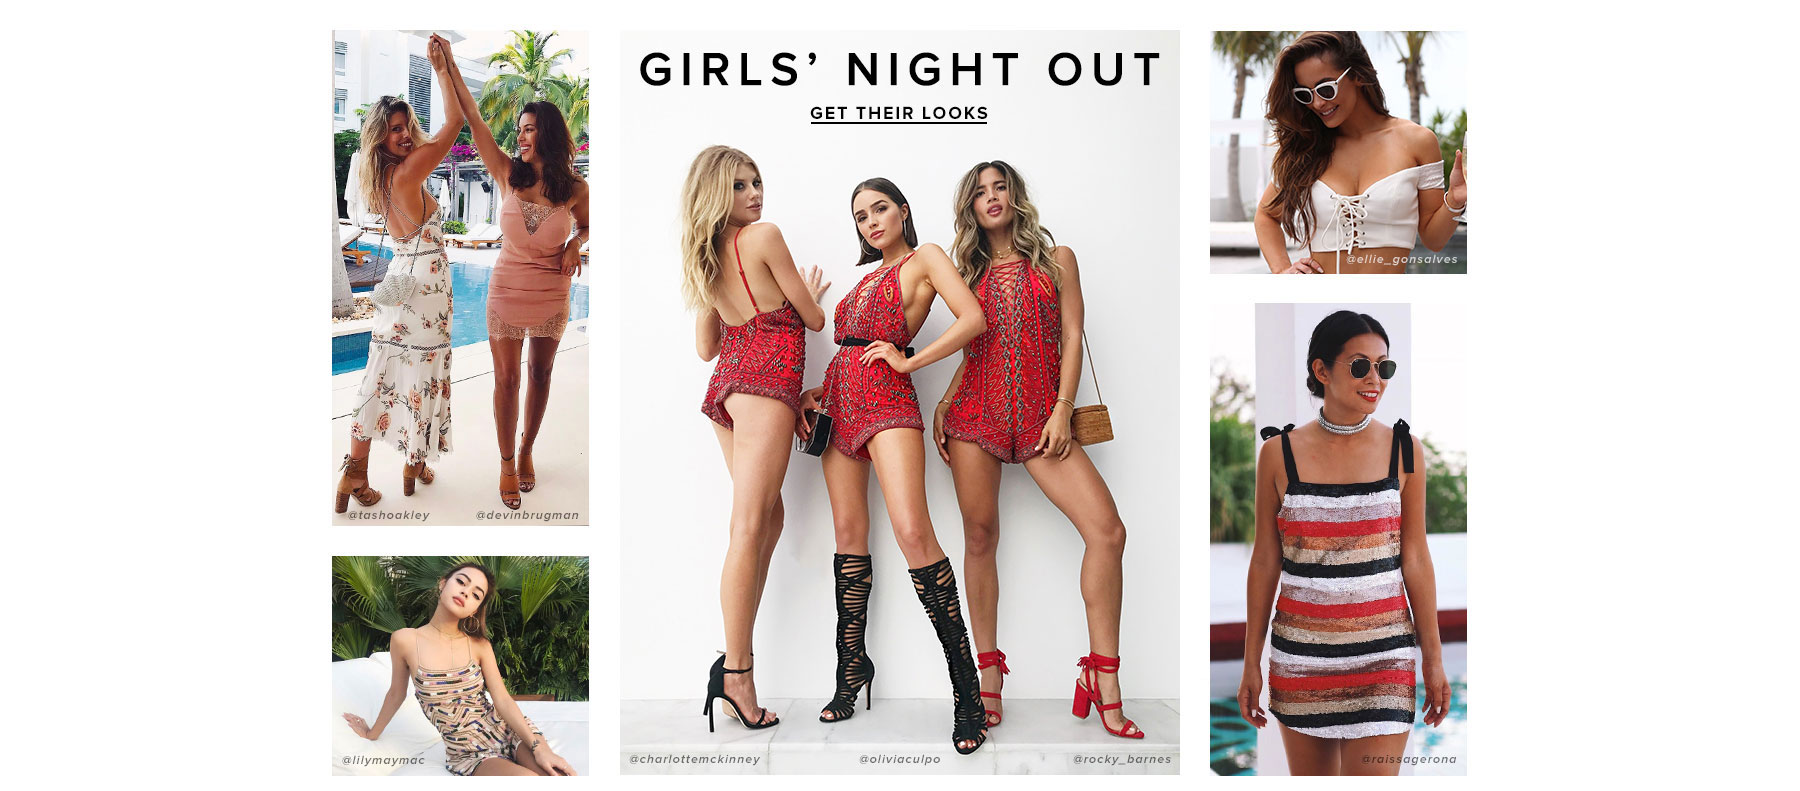 Girls' Night Out. Look hot. Wear cute stuff. Go out. Take pictures. Post 'em on the 'gram. Repeat. Get their Looks